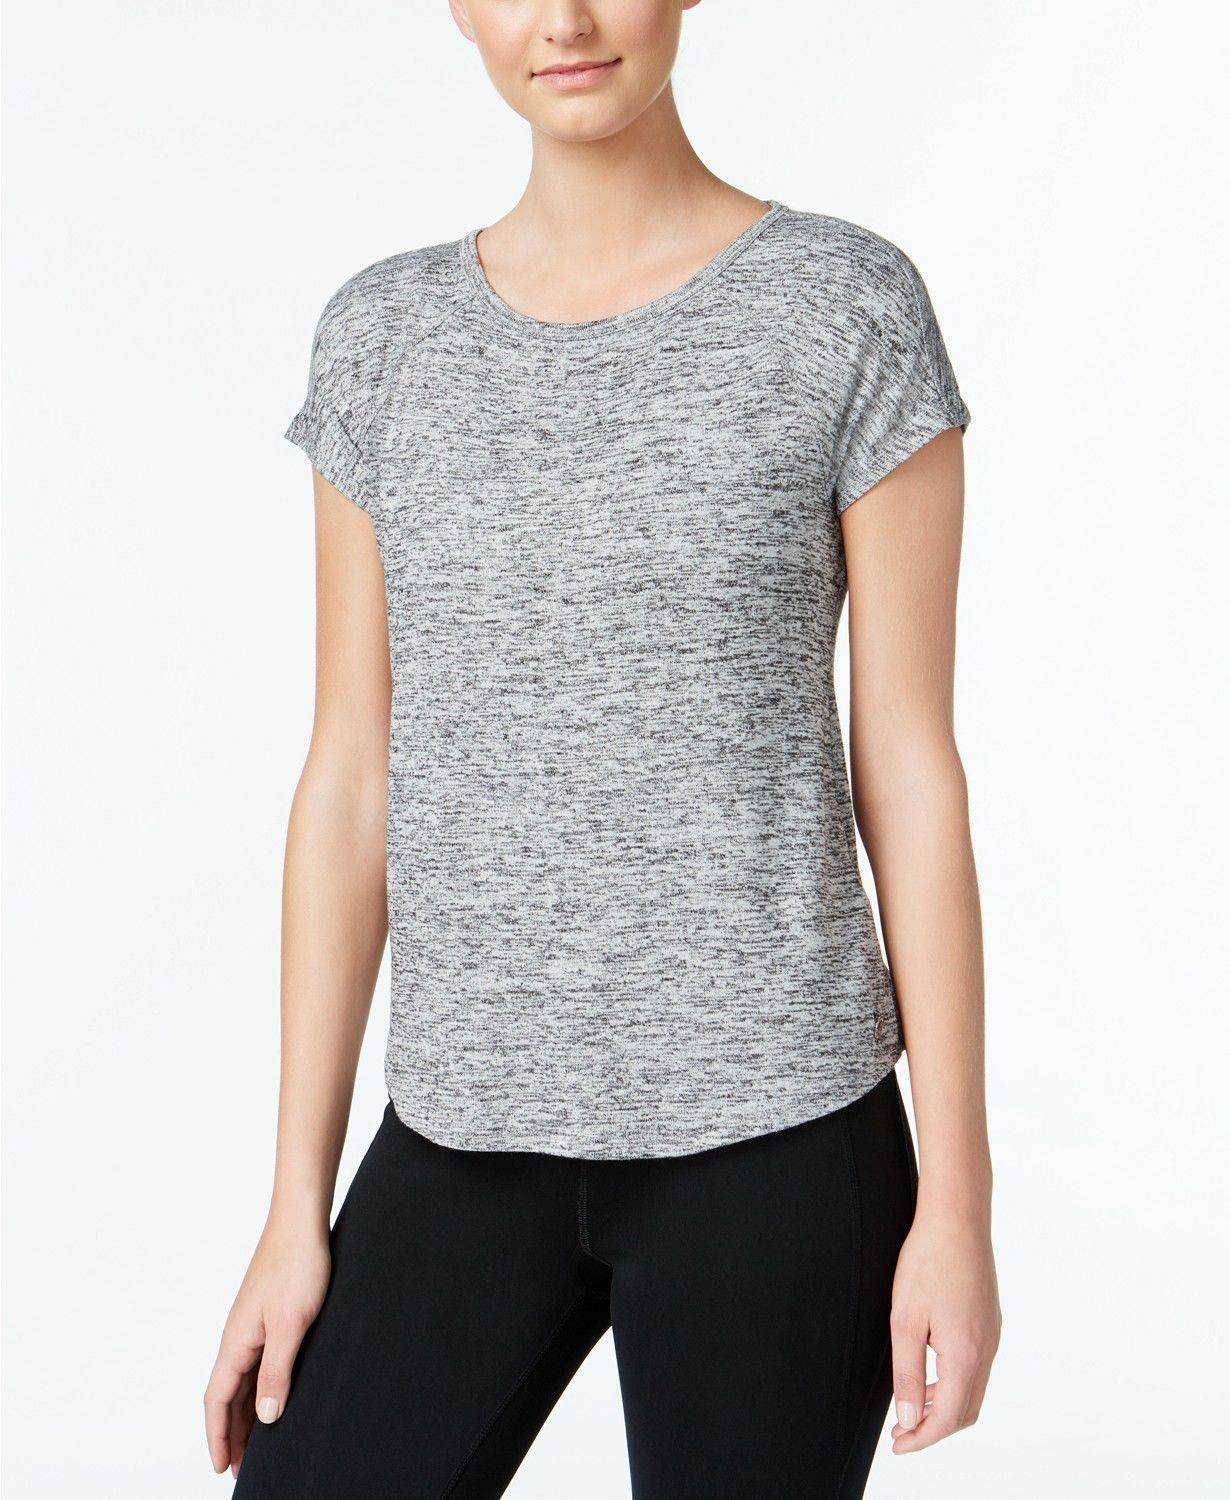 Primary image for Calvin Klein Womens Performance Marled Keyhole Back Top Grey Size XXL $49 - NWT